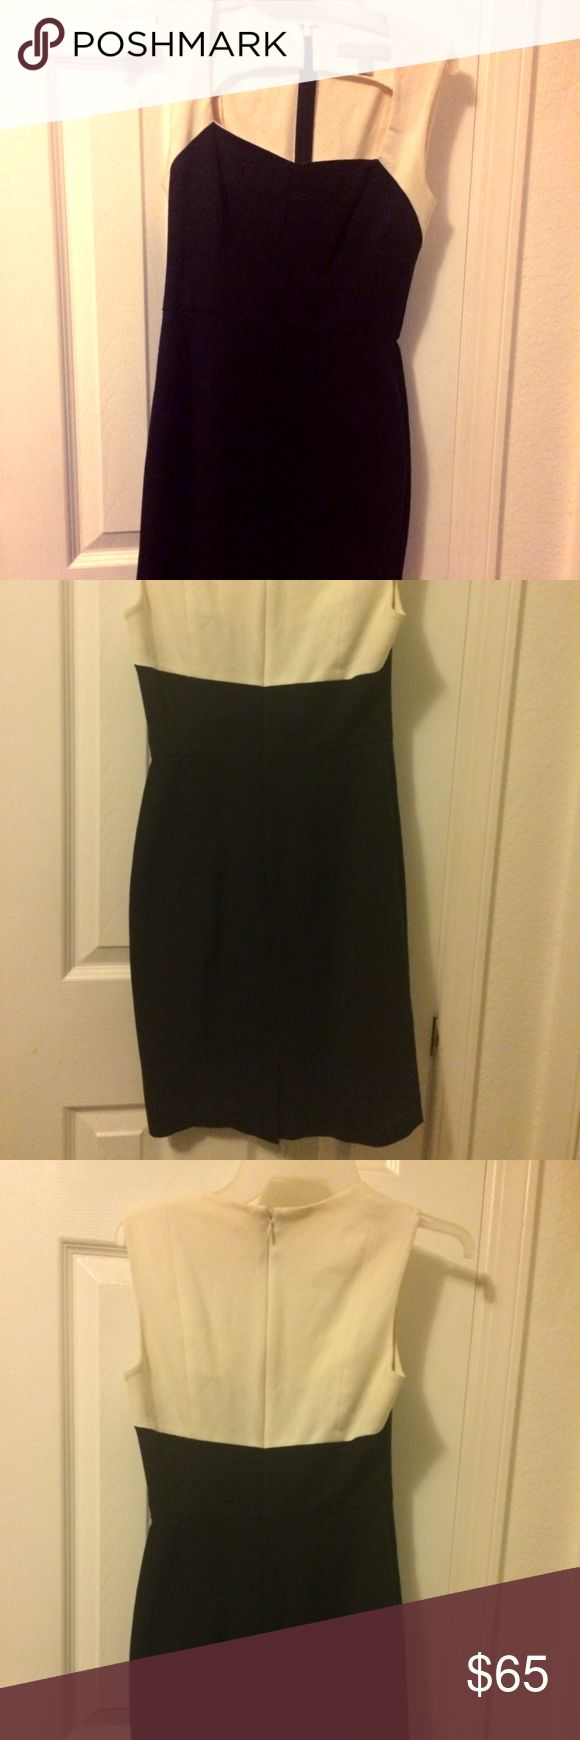 Banana Republic dress, Size: 0P Classy black and cream dress, hugs curves. No stains or tears. The size is a Petite 0. Banana Republic Dresses Midi